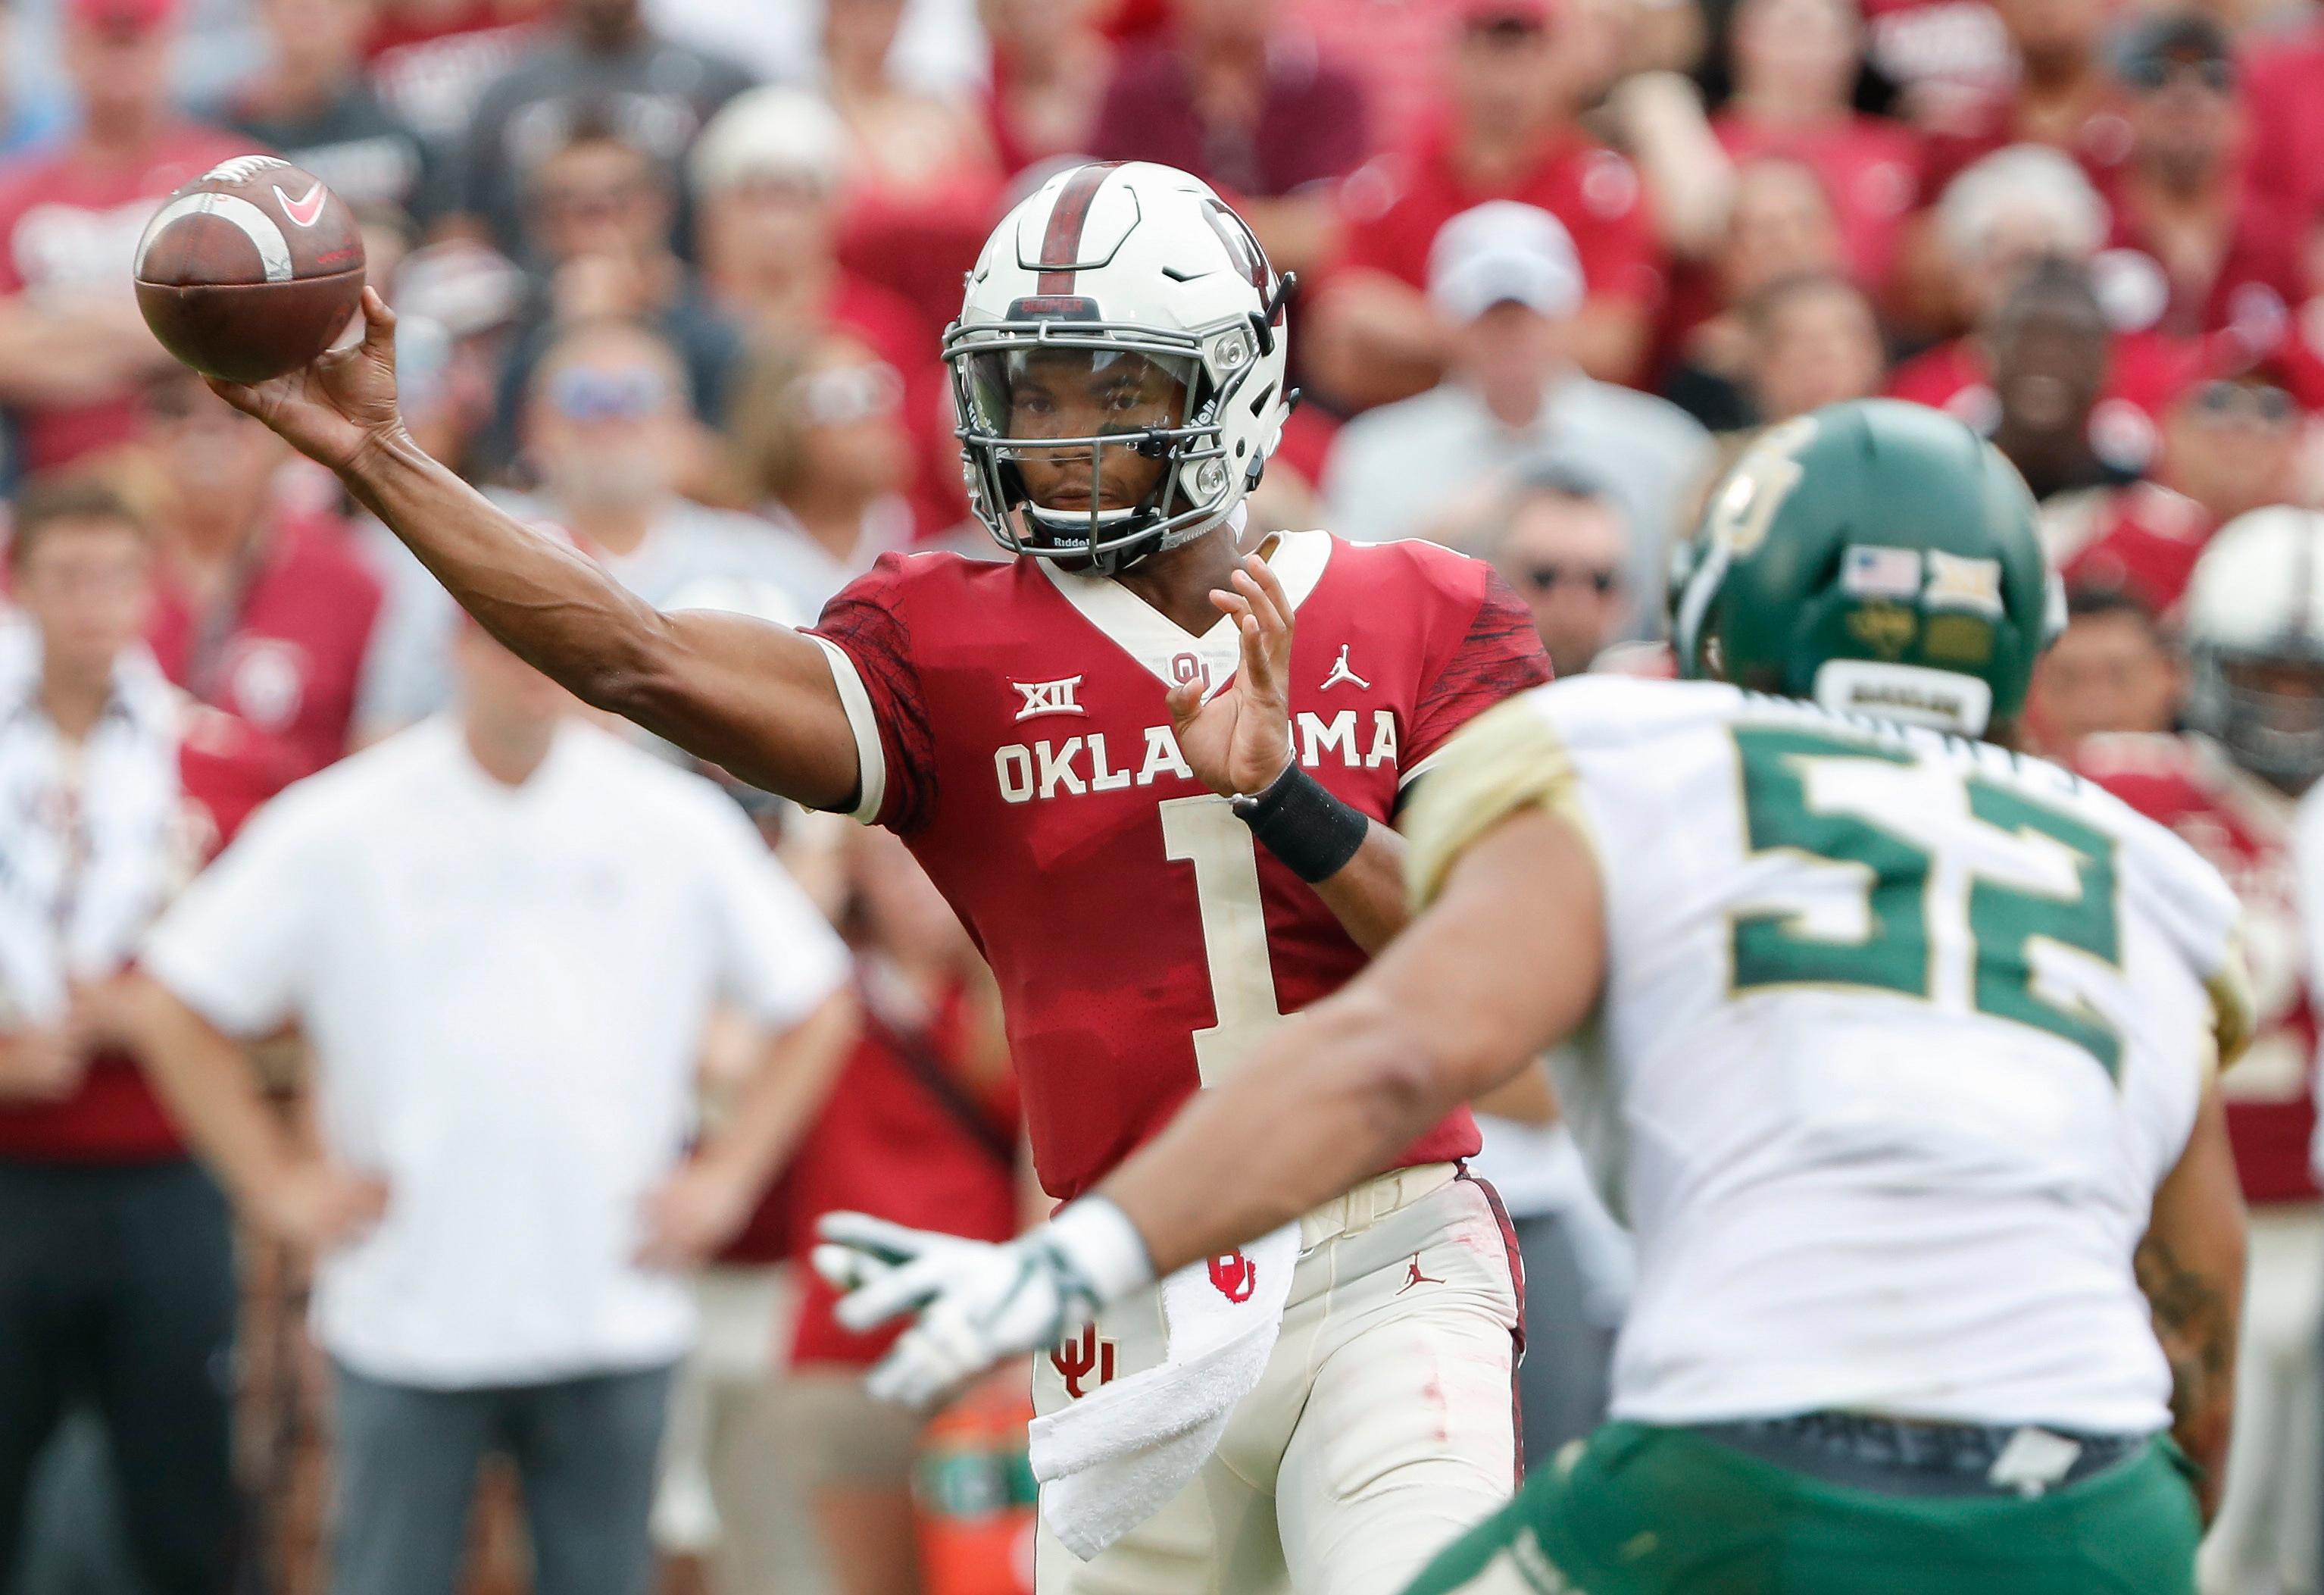 Oklahoma quarterback Kyler Murray (1) passes against Baylor in the first half of an NCAA college football game in Norman, Okla., Saturday, Sept. 29, 2018. (AP Photo/Alonzo Adams)